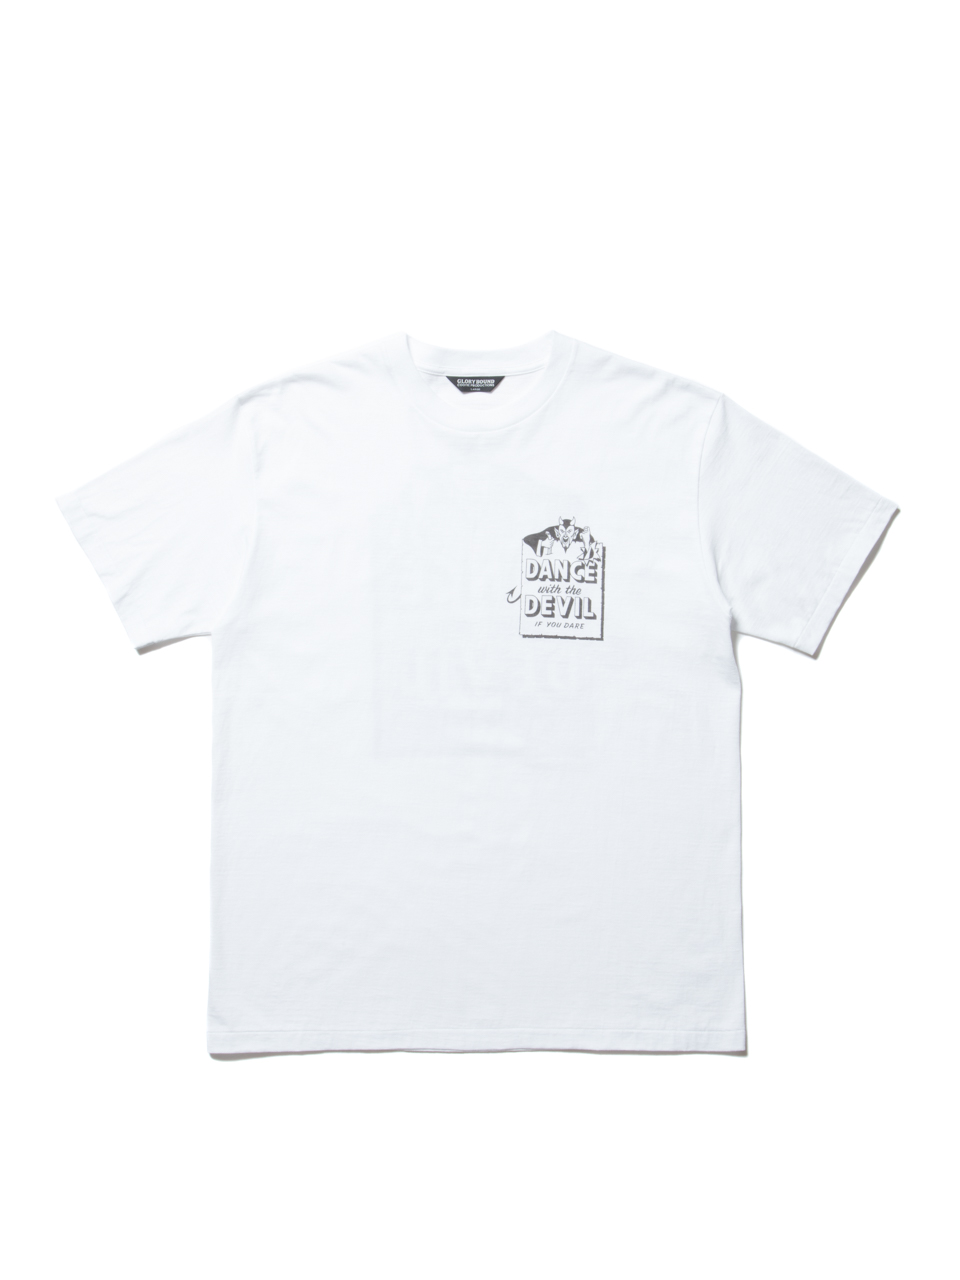 COOTIE Print S/S Tee (DANCE WITH THE DEVIL)